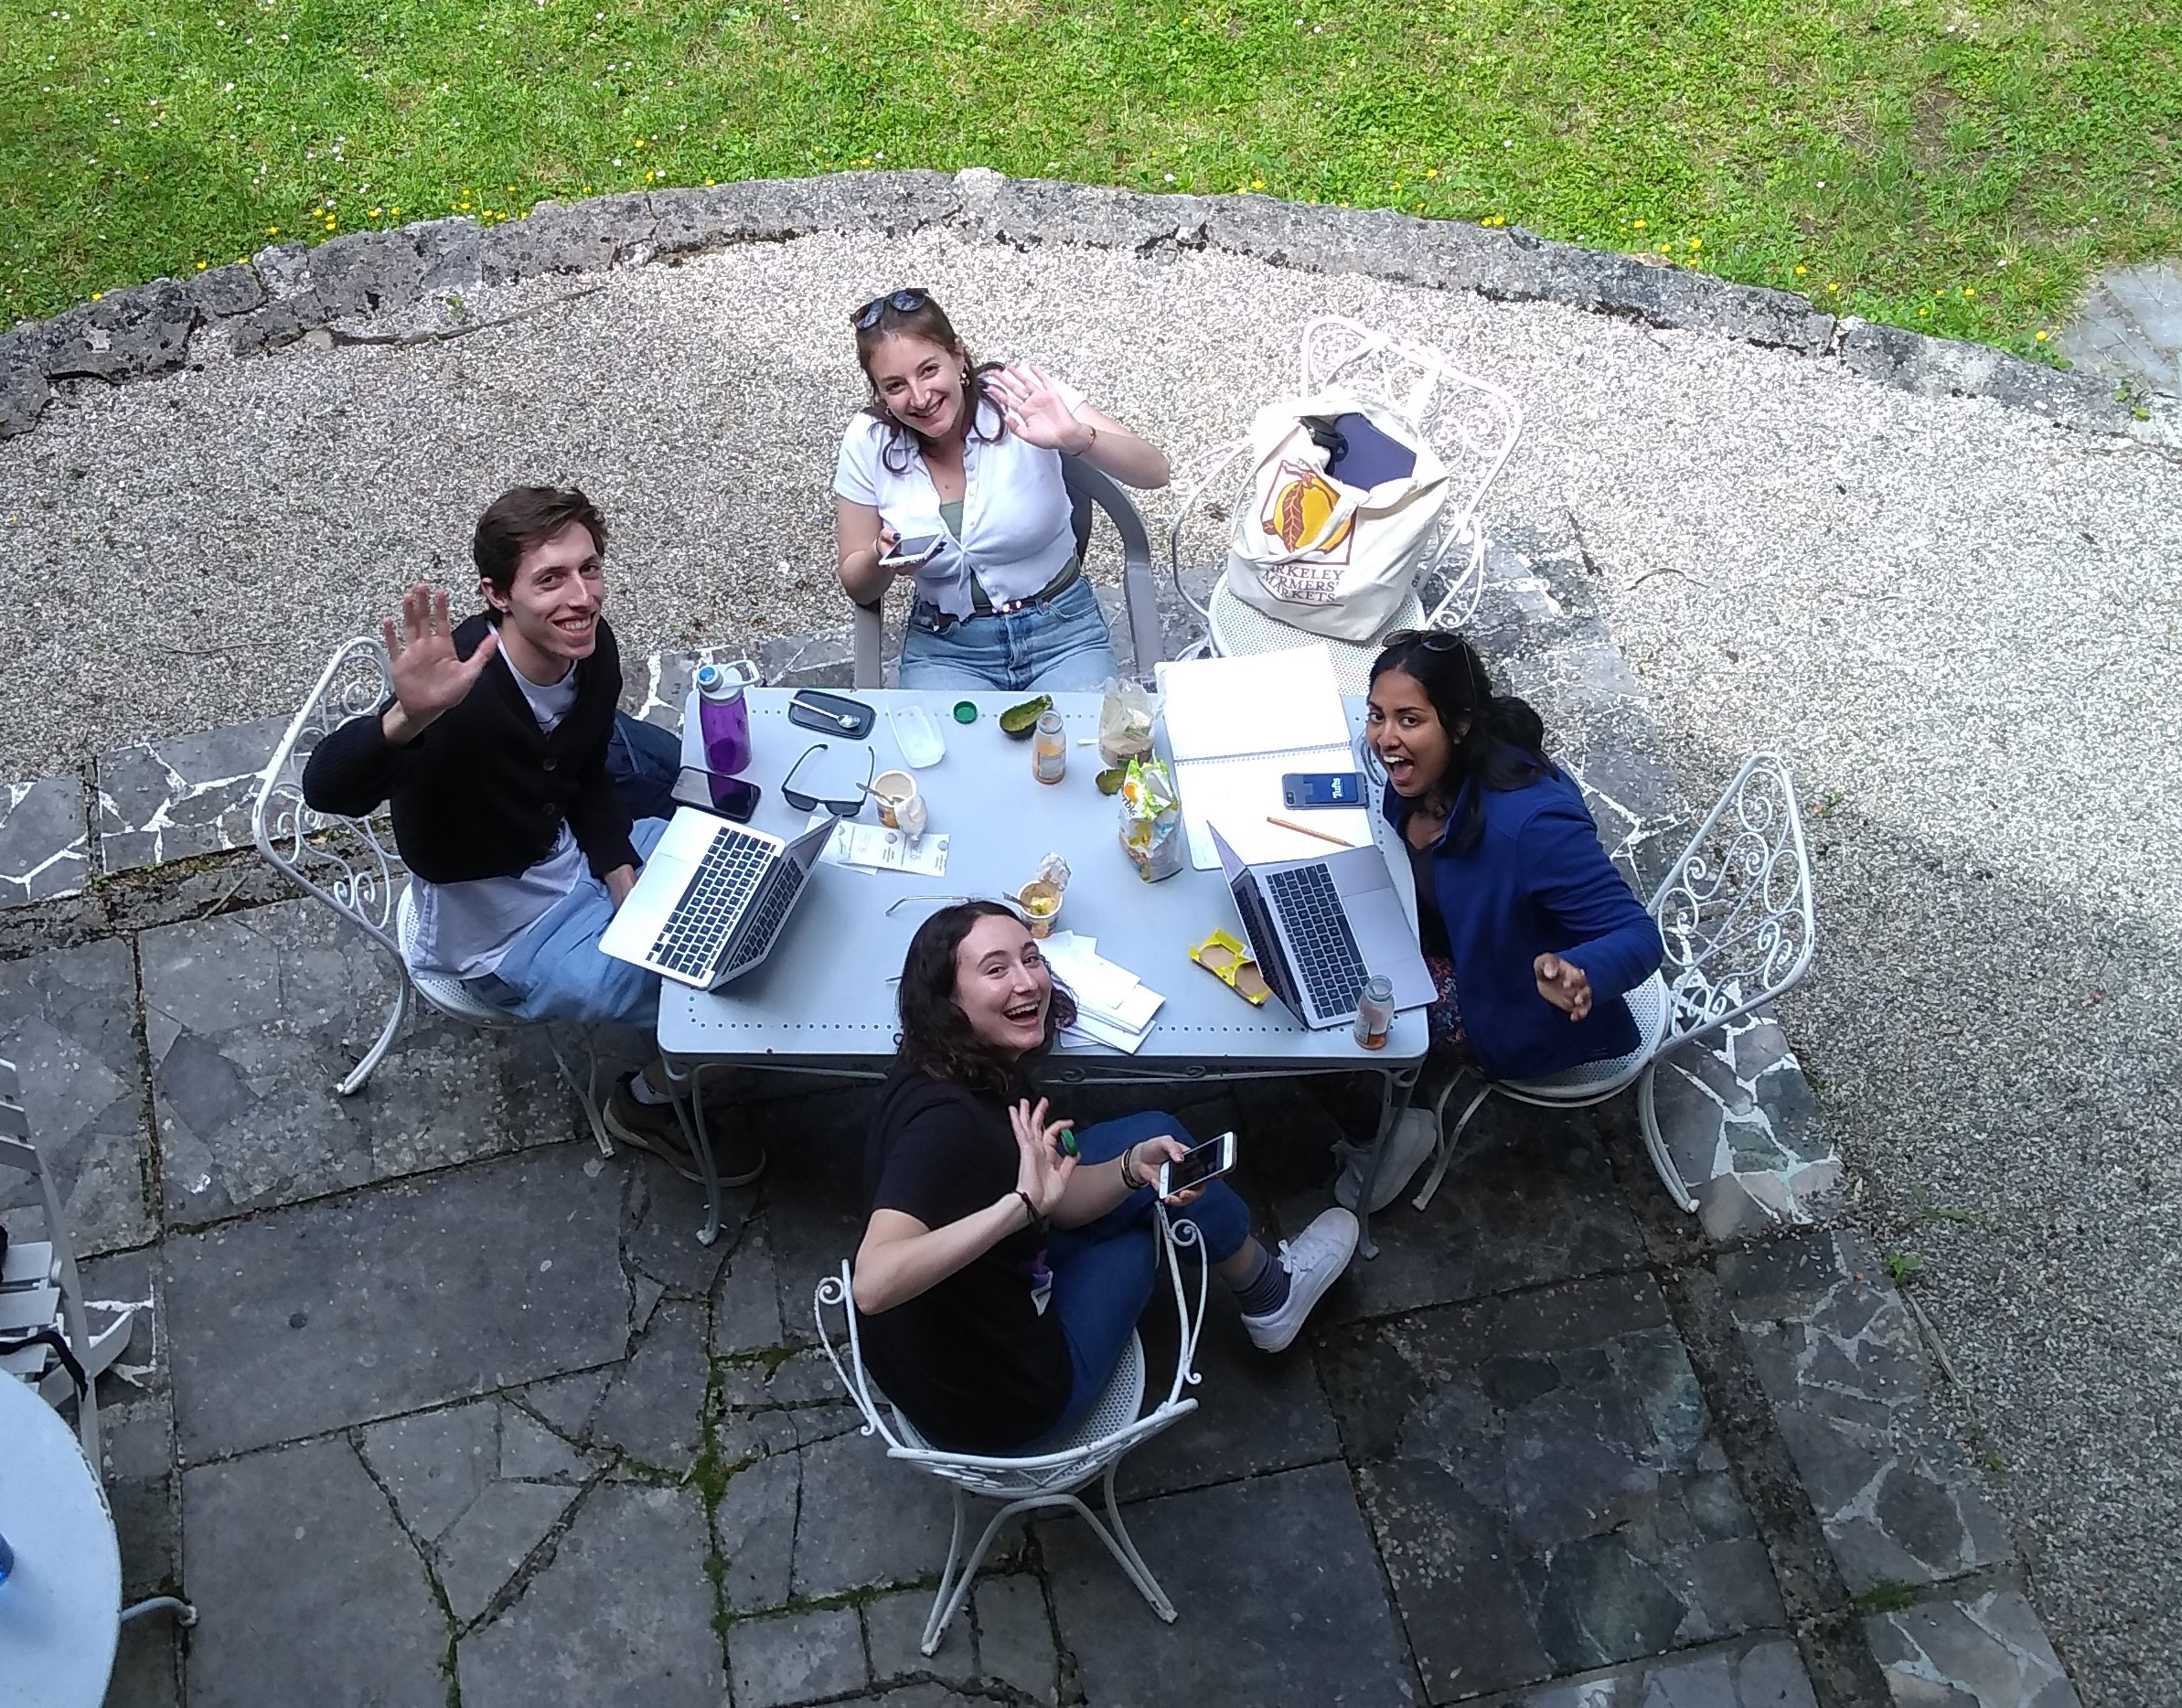 An aerial view of four students sitting at a table in the garden and waving